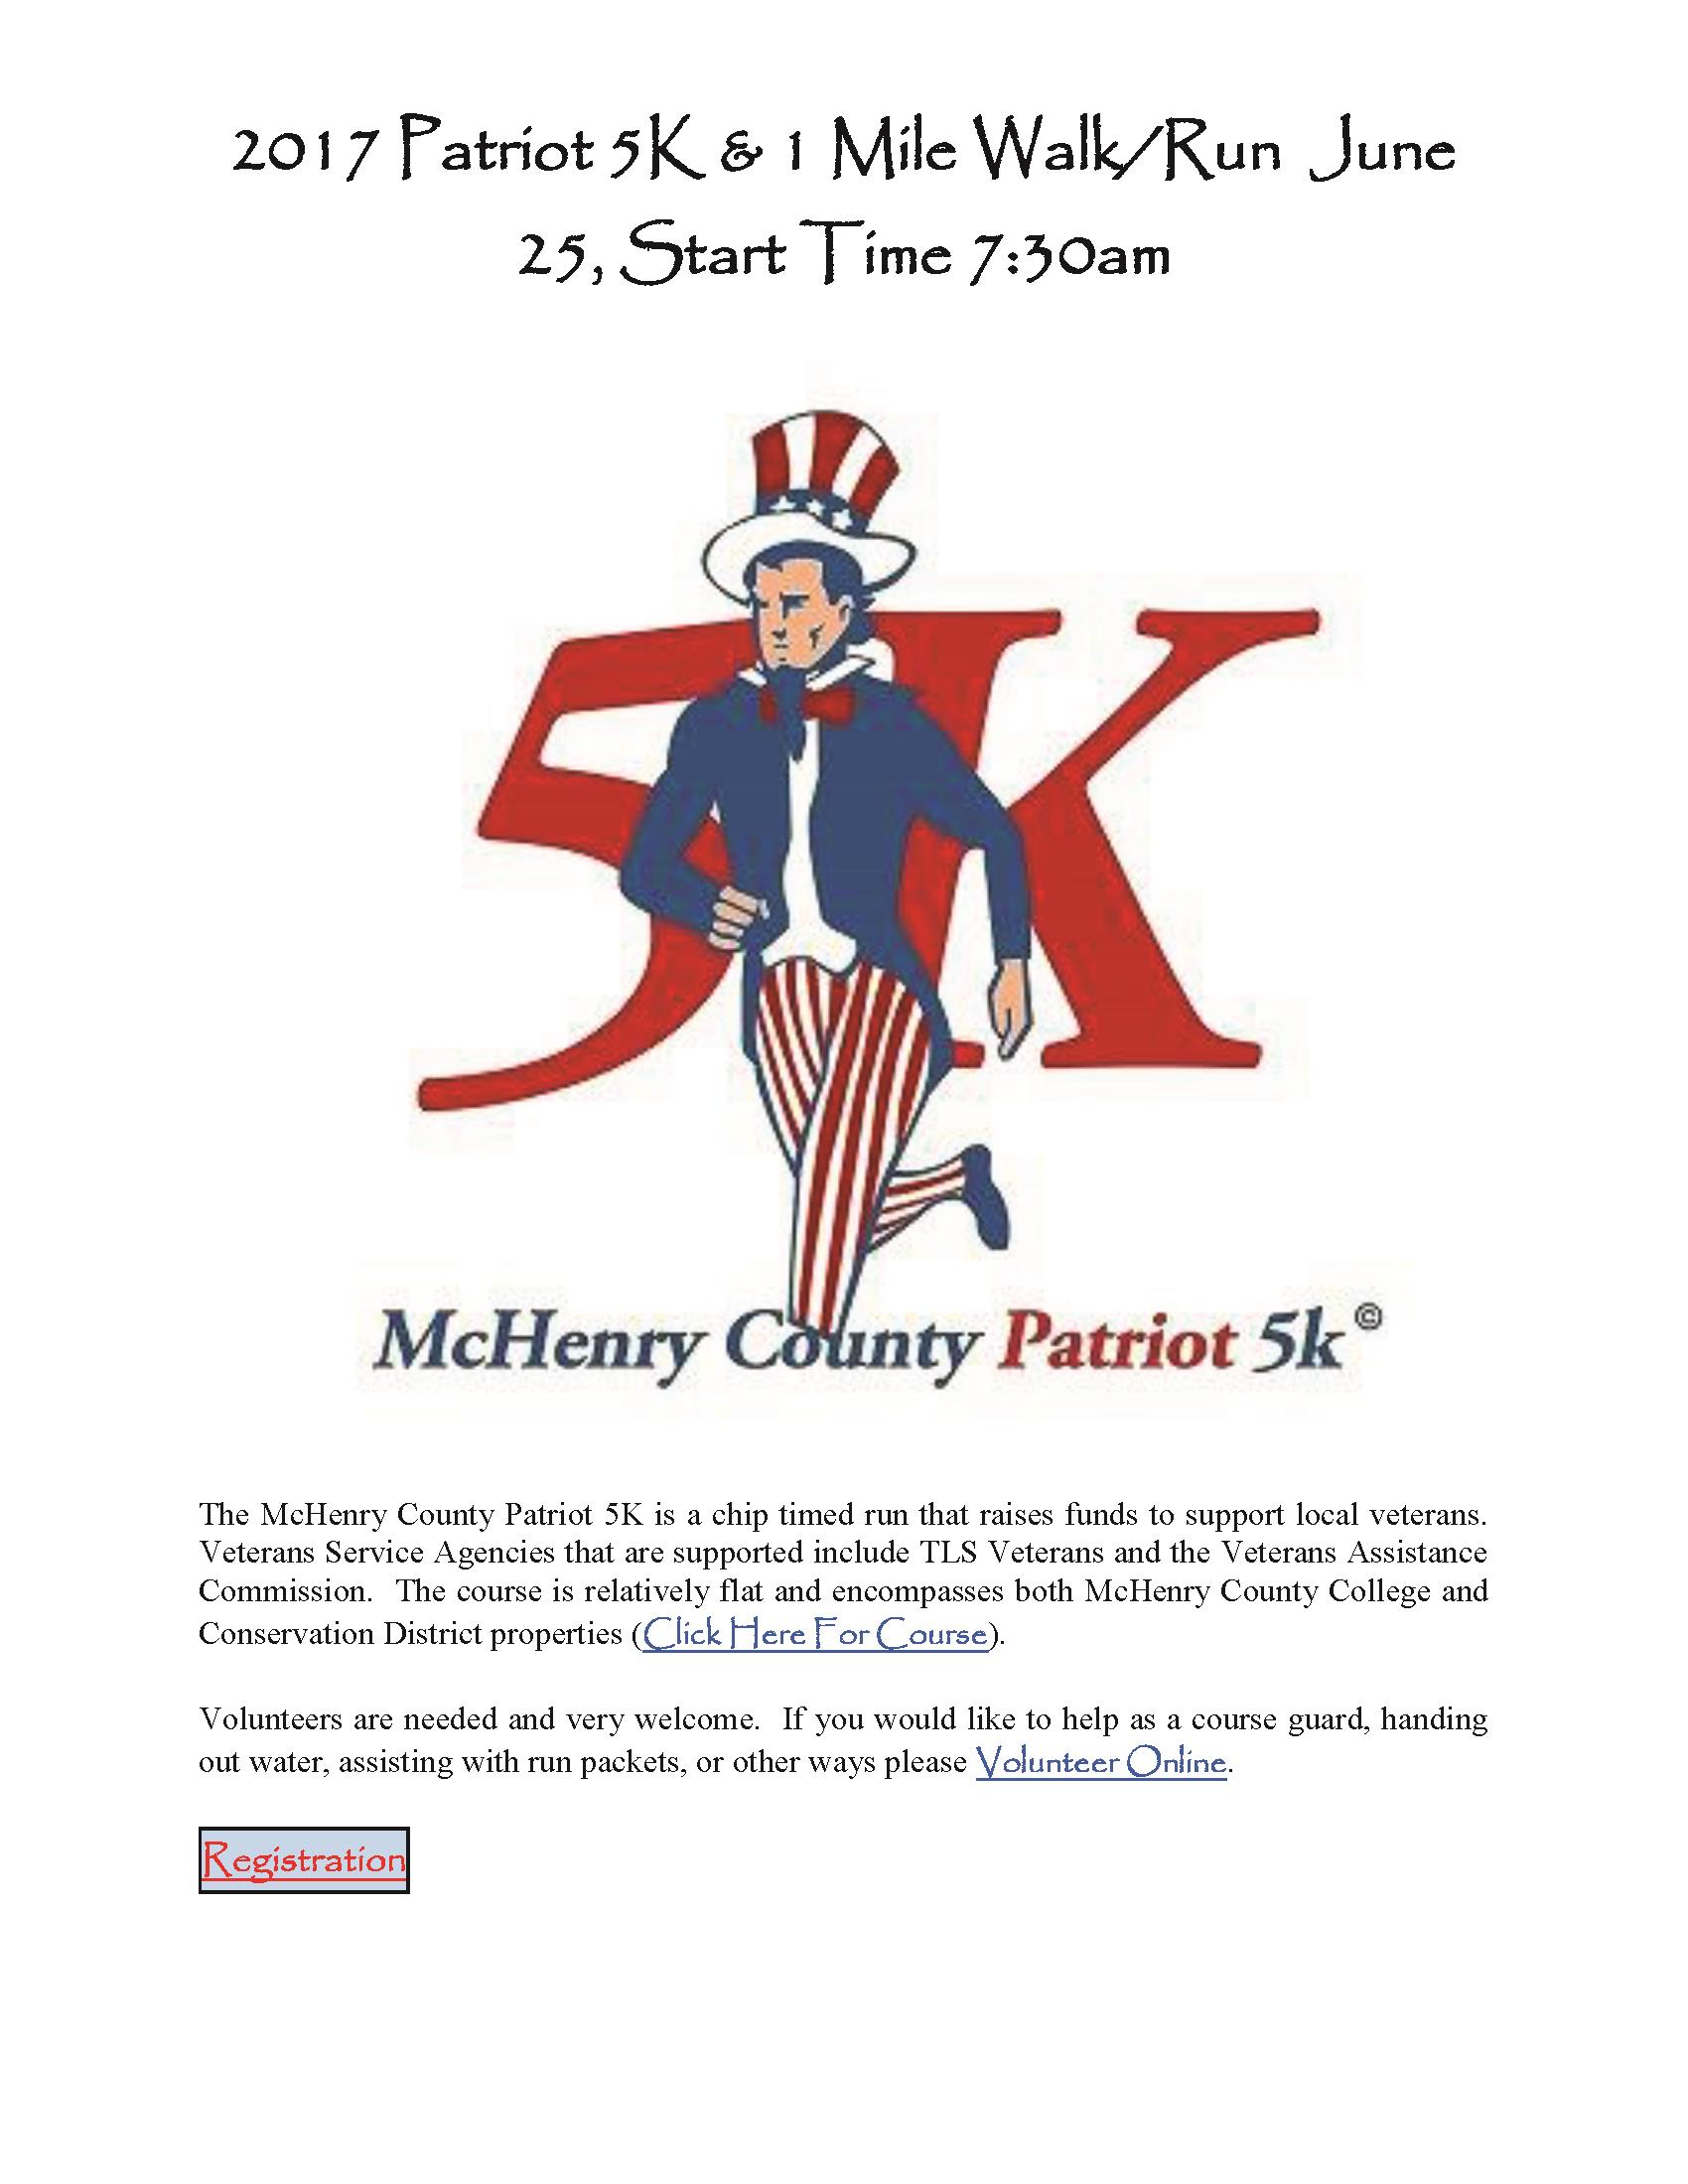 The McHenry County Patriot 5K Flier